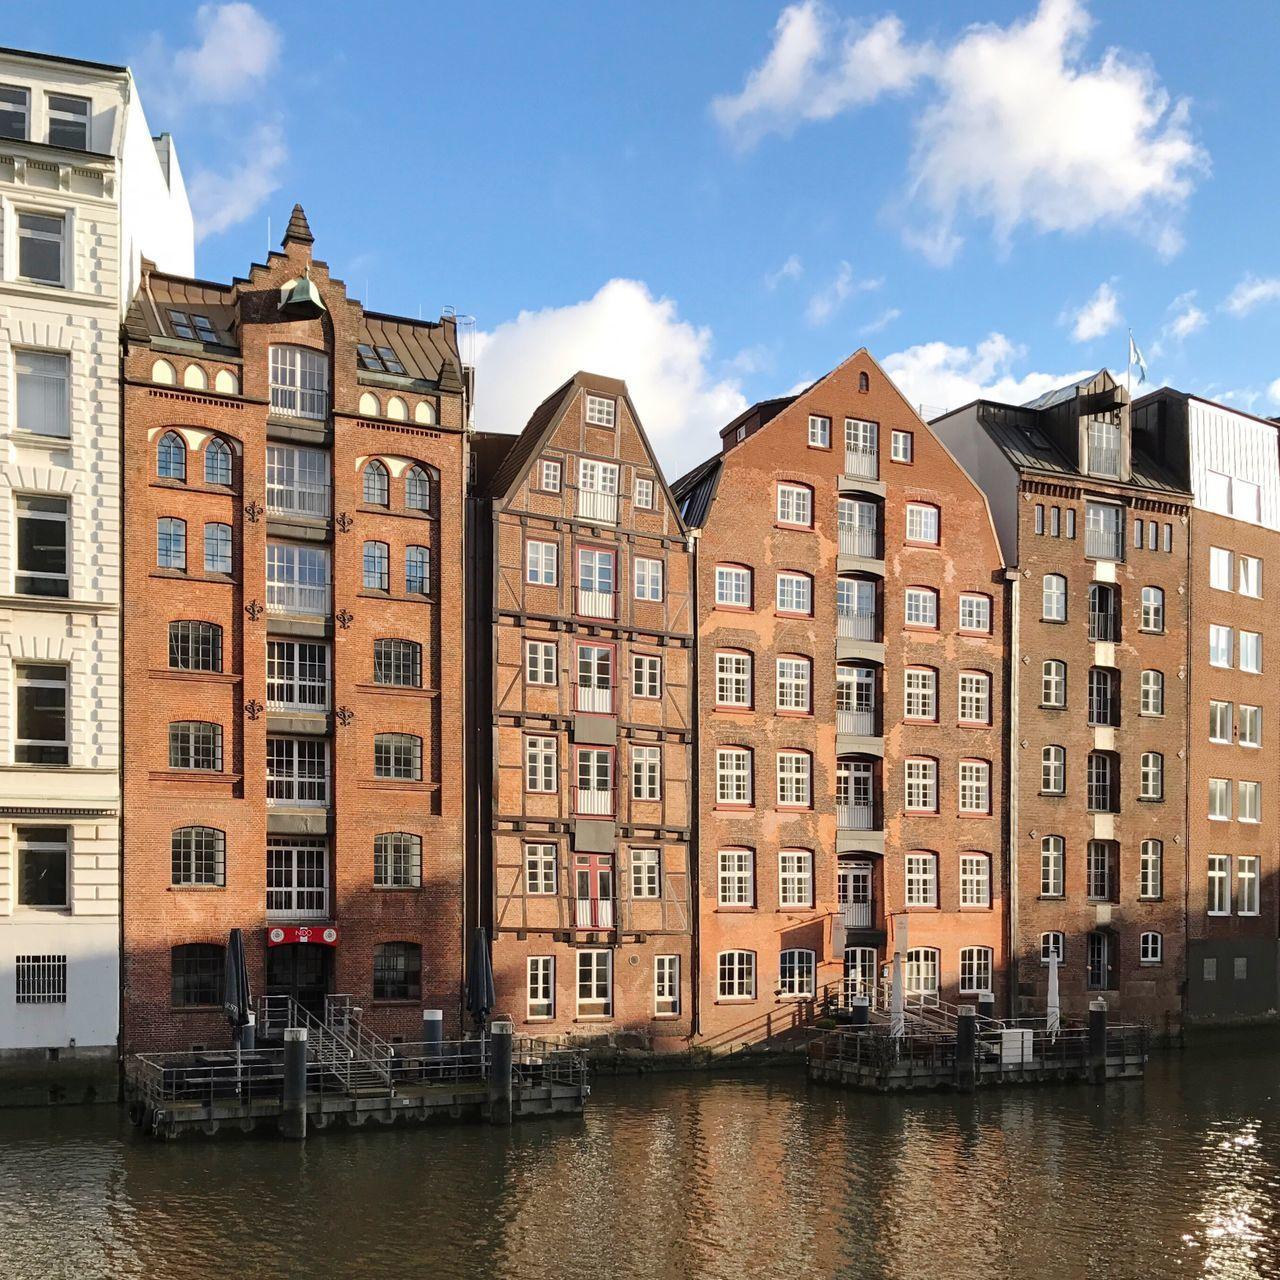 Hamburg Germany Altstadt Fleet Historical Building Architecture Building Exterior Sky Built Structure Waterfront City Travel Destinations Row House No People Residential Building Water Outdoors Day Townhouse